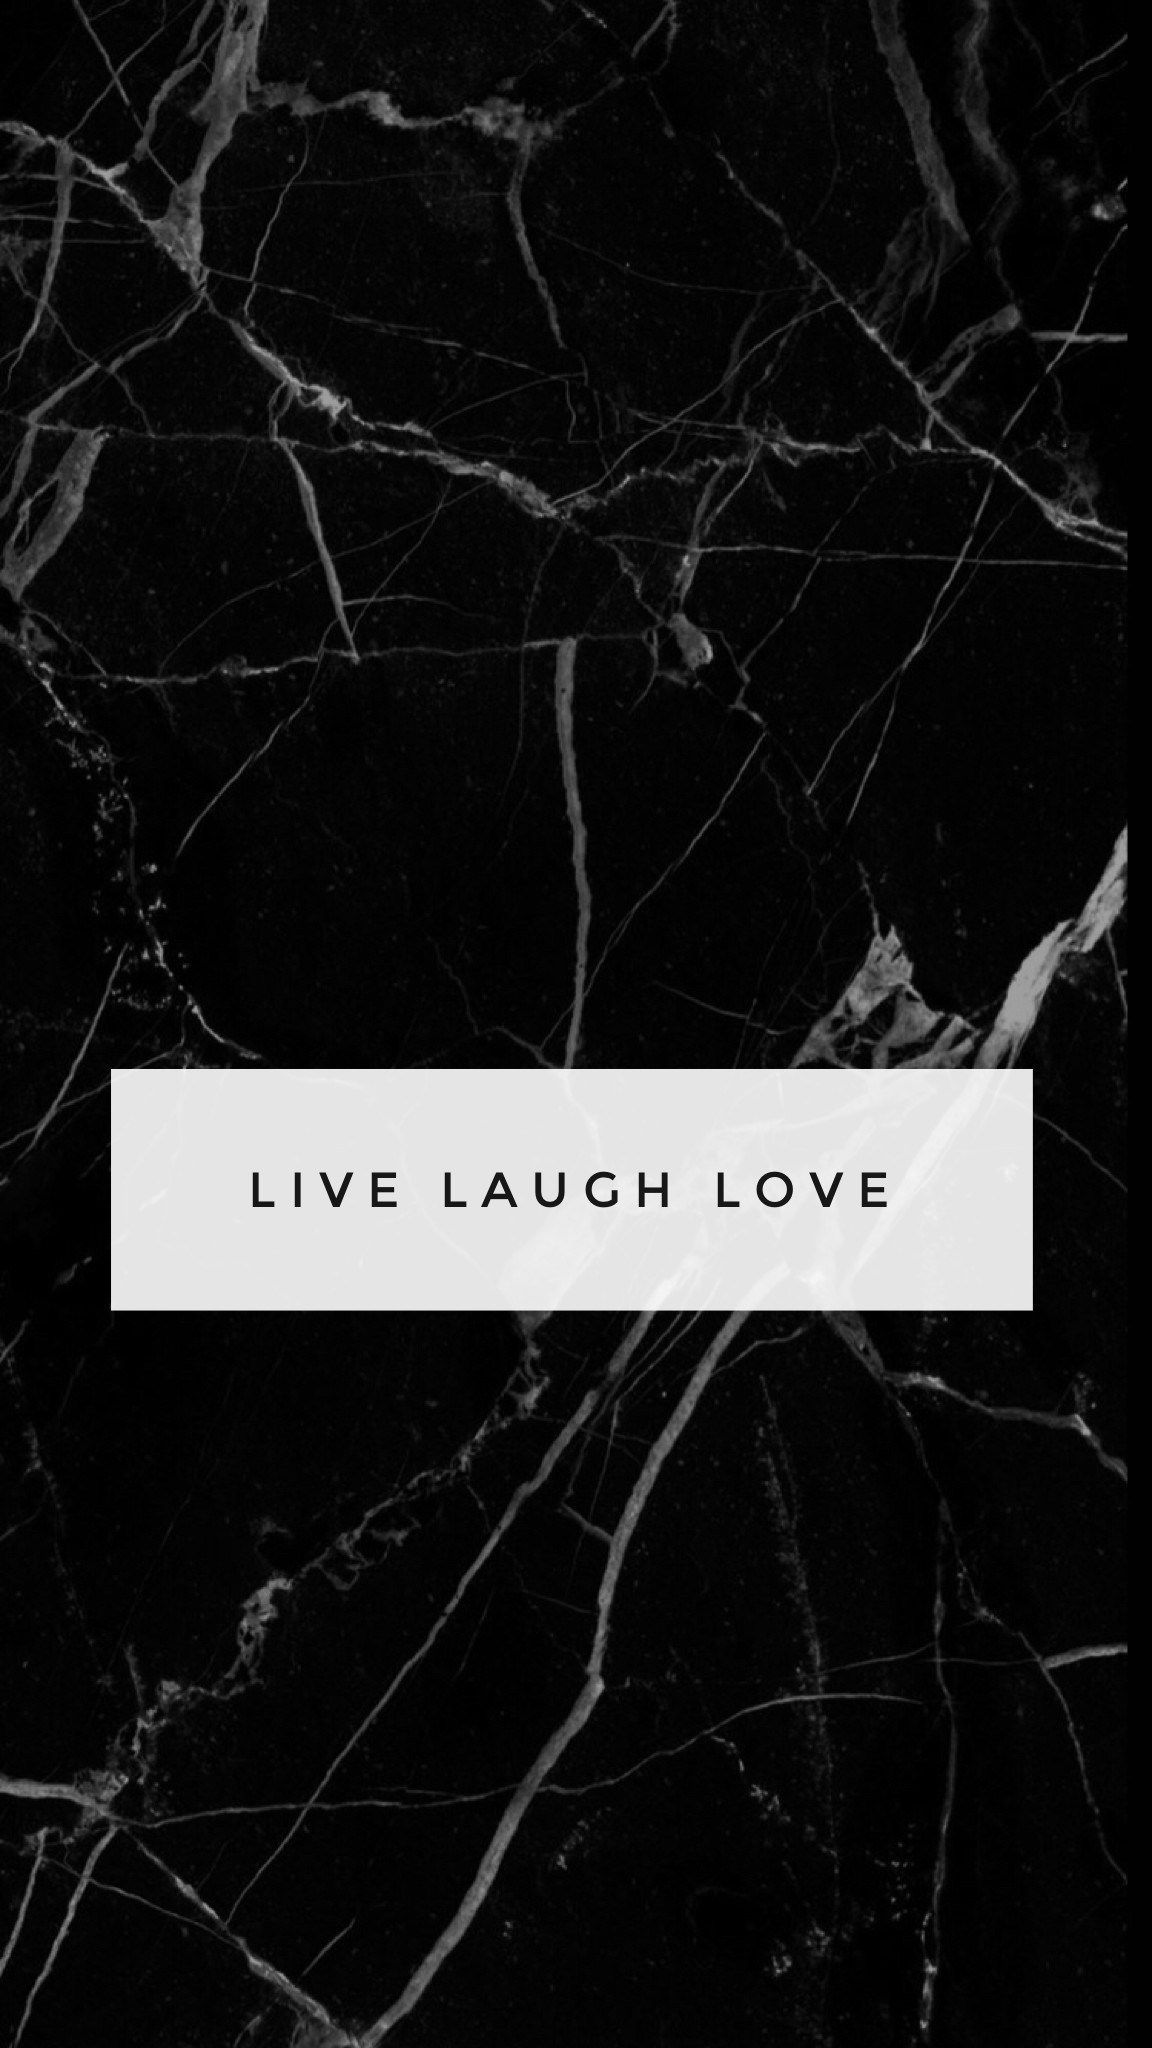 Live Laugh Love Iphone Wallpaper Tumblr Aesthetic Iphone Wallpaper Usa Original Iphone Wallpaper